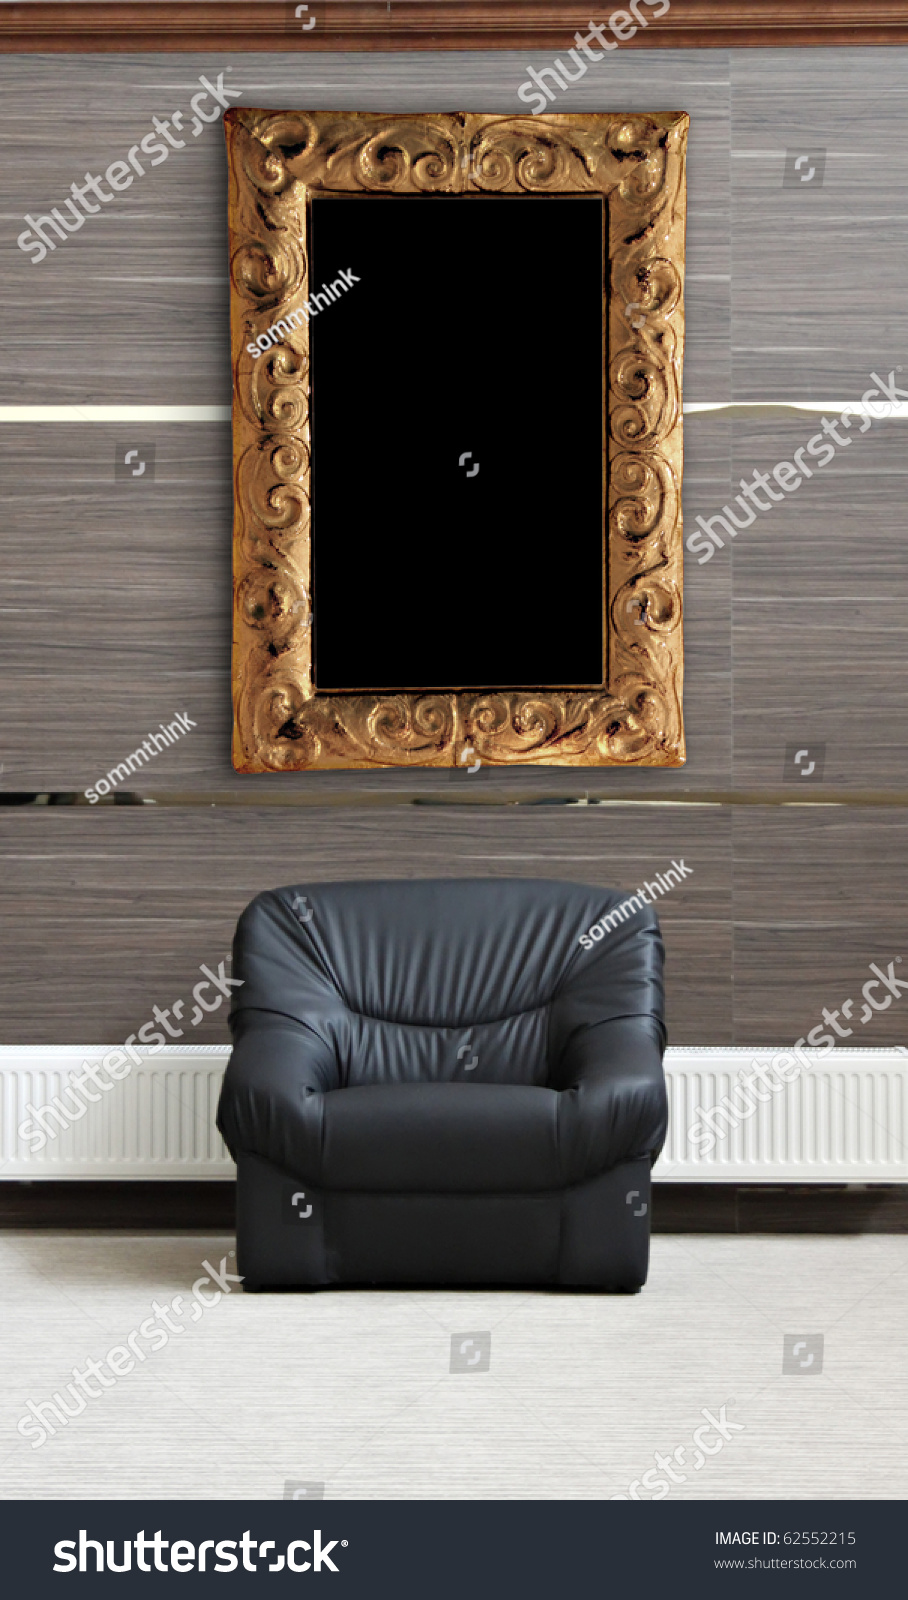 c65873ecdbc Royalty Free Stock Illustration of Black Chair Radiator Picture ...